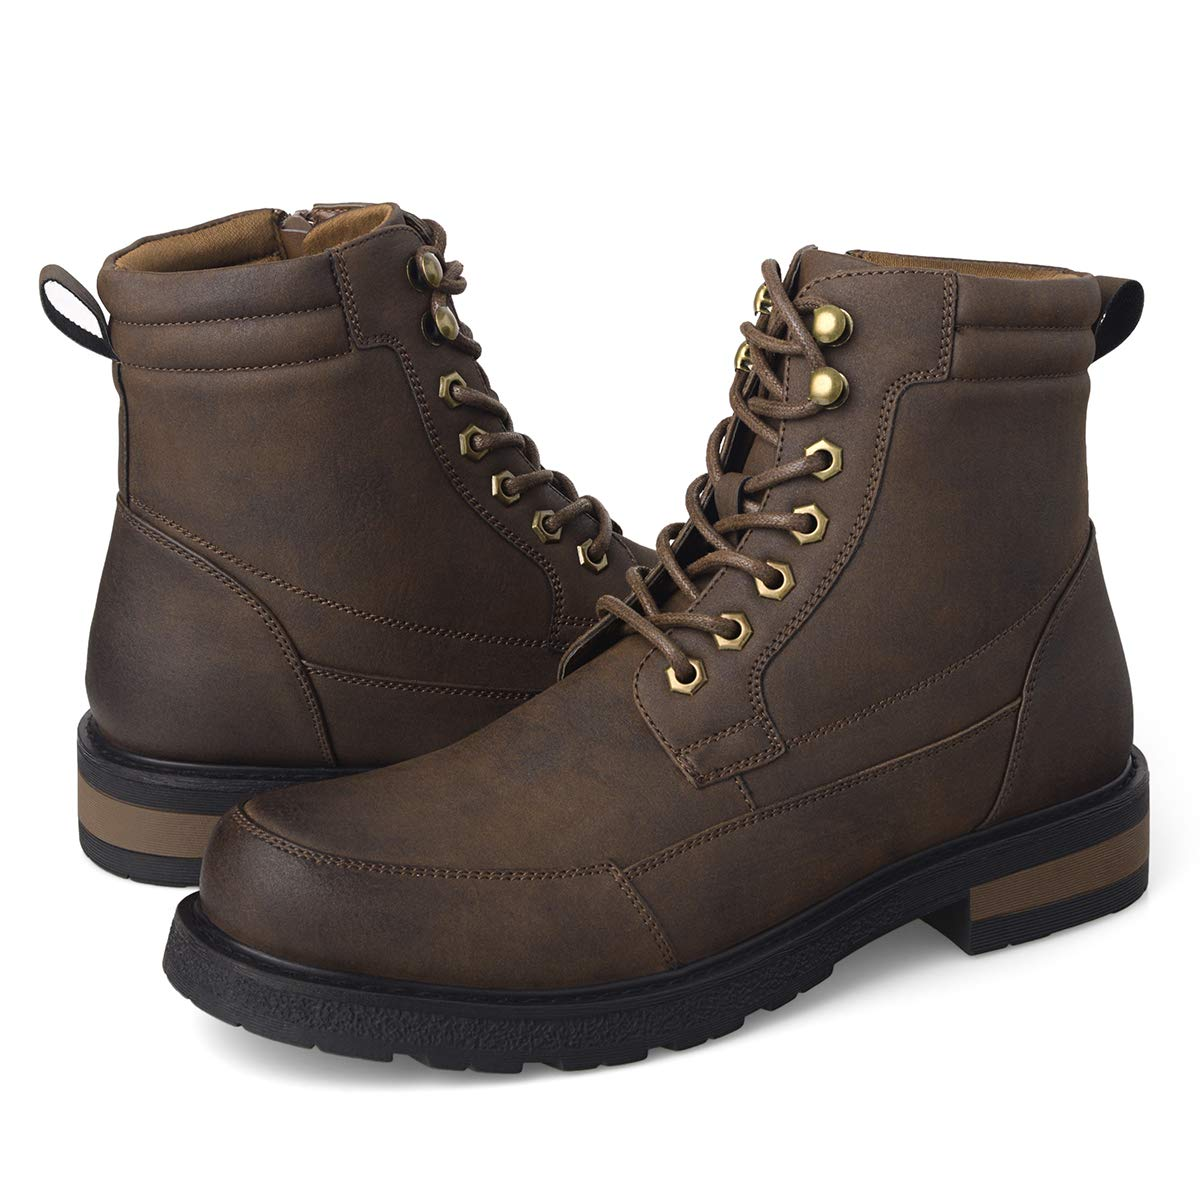 Best Rated in Men's Mountaineering Boots & Helpful